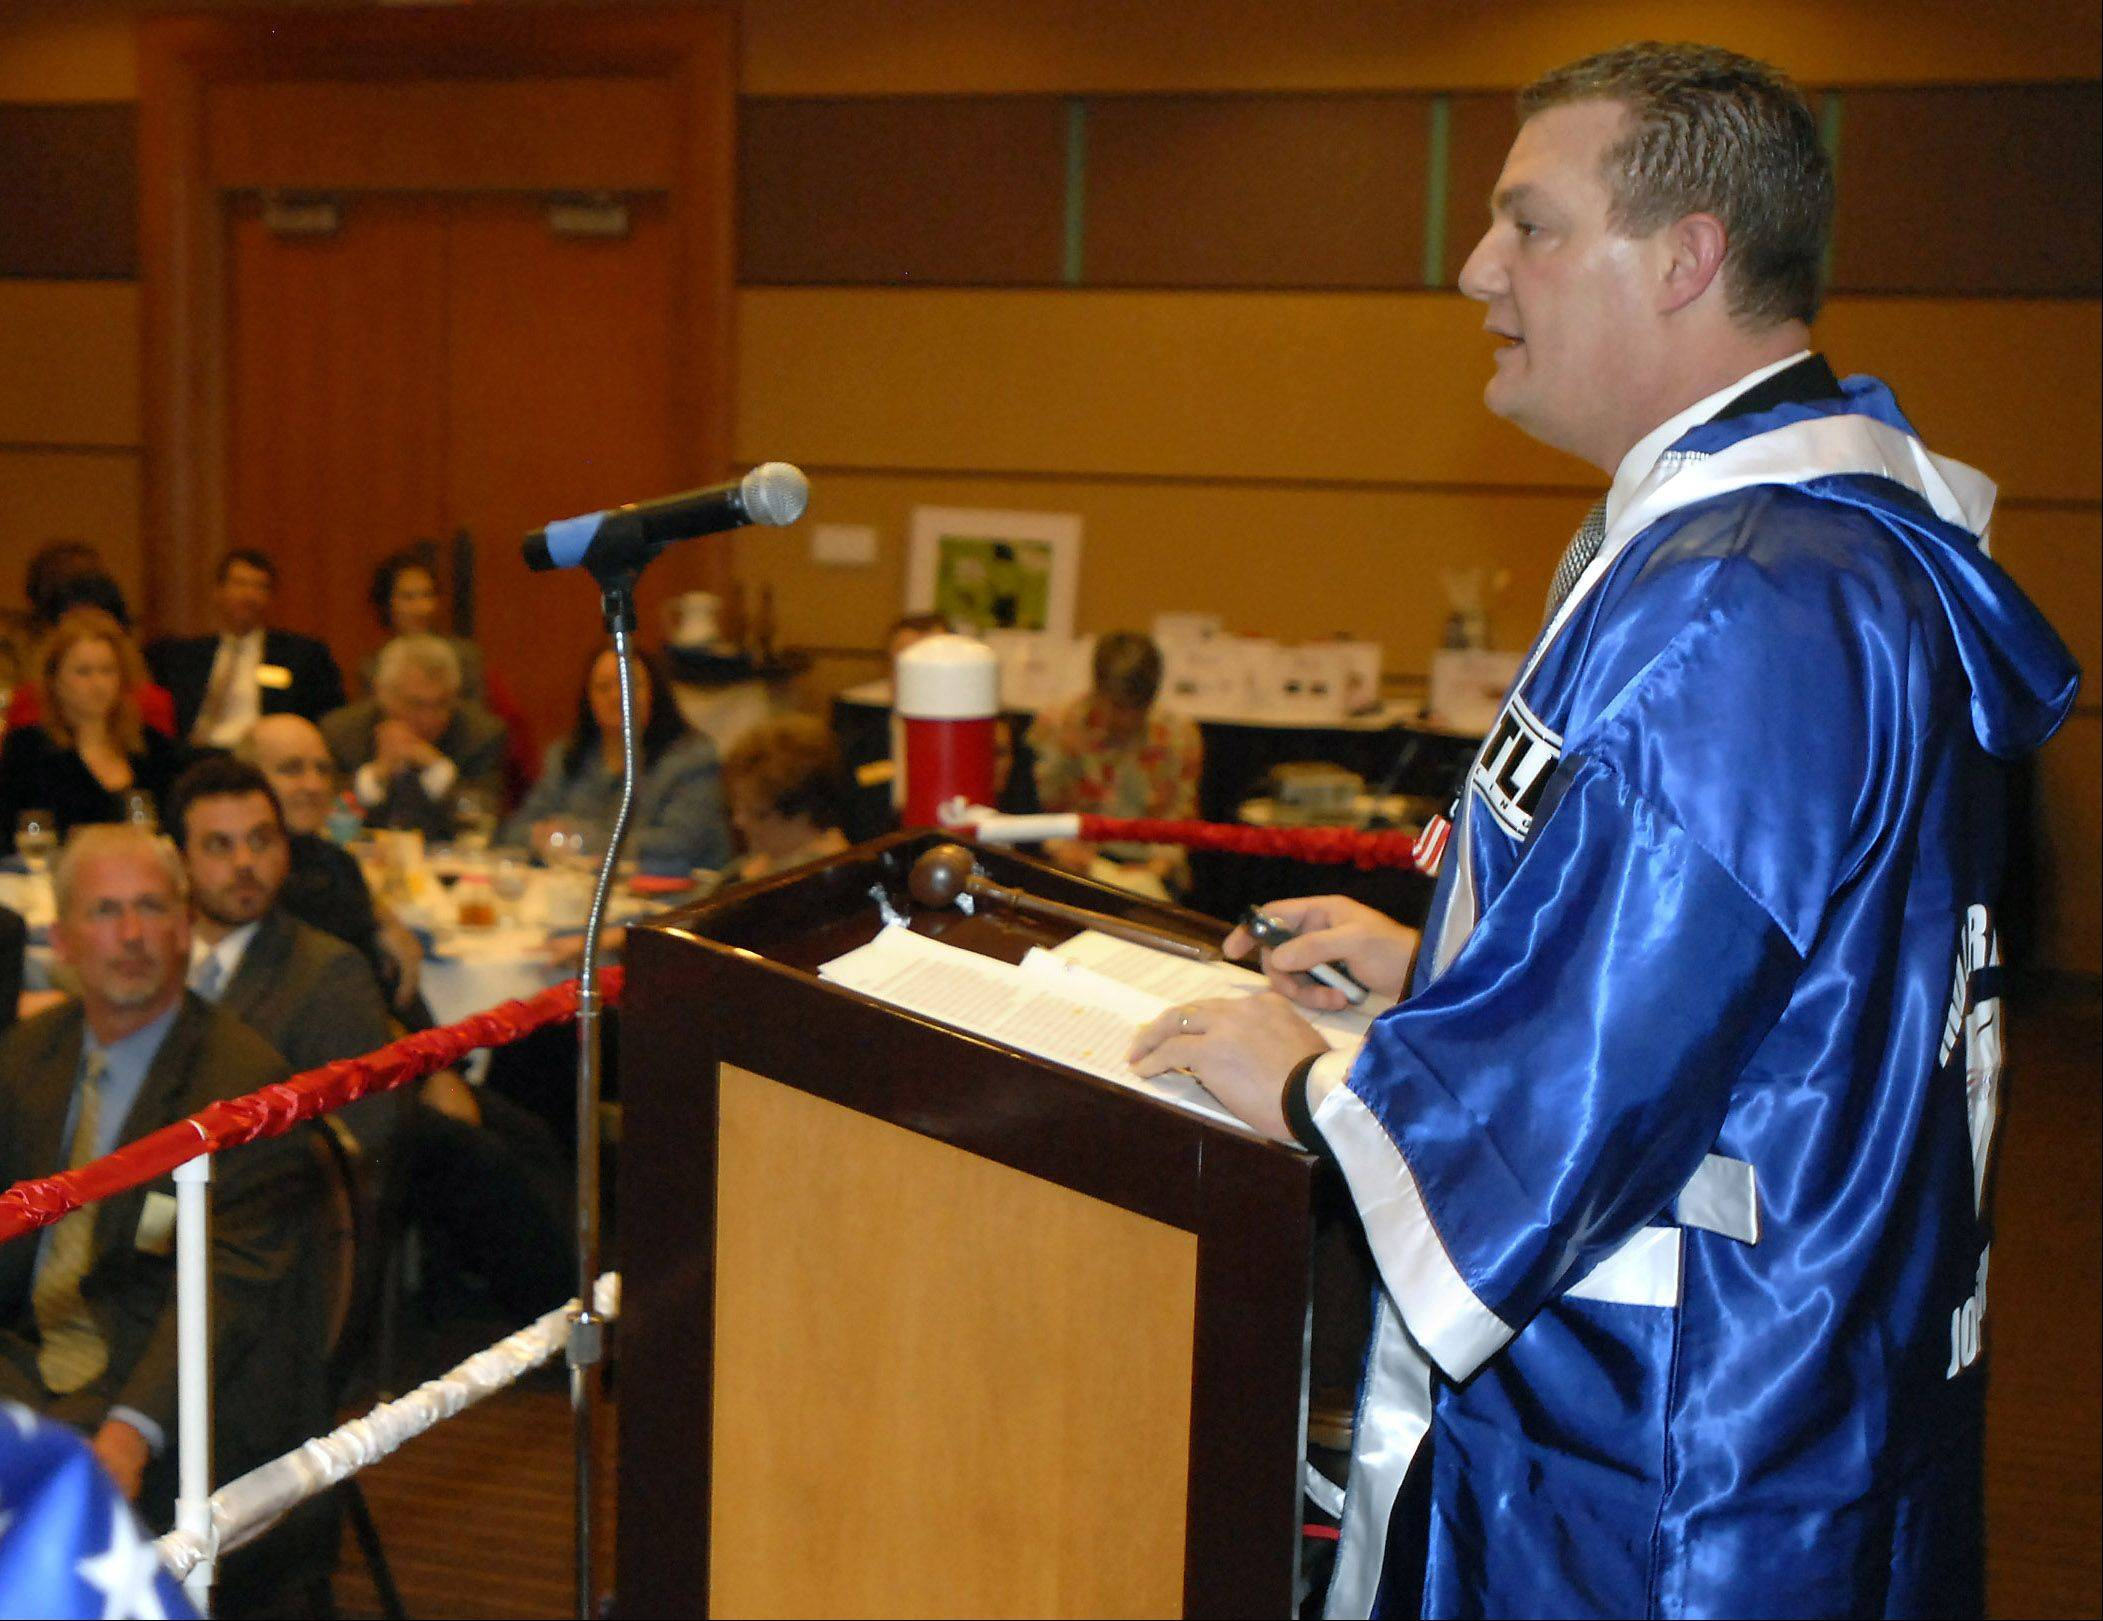 Dr. Joseph Favia speaks at the Arlington Heights Chamber of Commerce installation and recognition celebration in 2010 when he was president of the group. The robe was given to him because the event had a boxing theme.